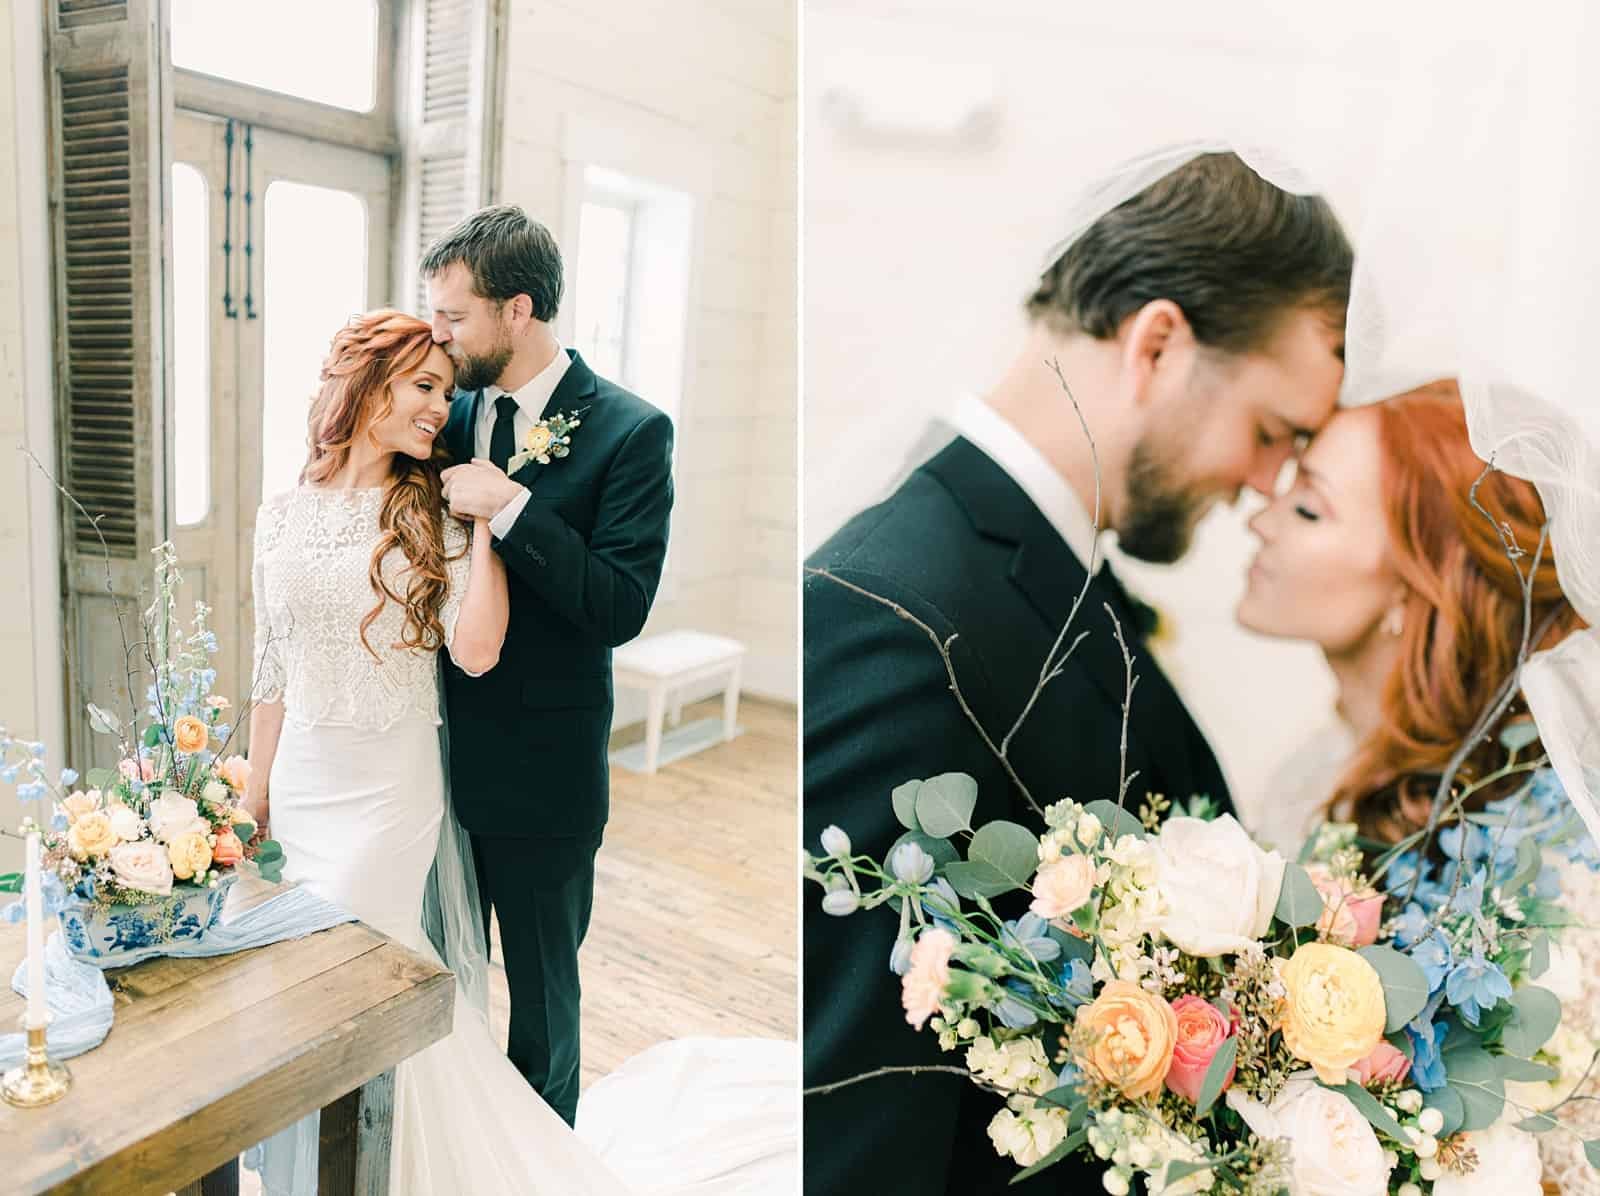 Utah bride and groom with pastel wedding flowers, destination European wedding